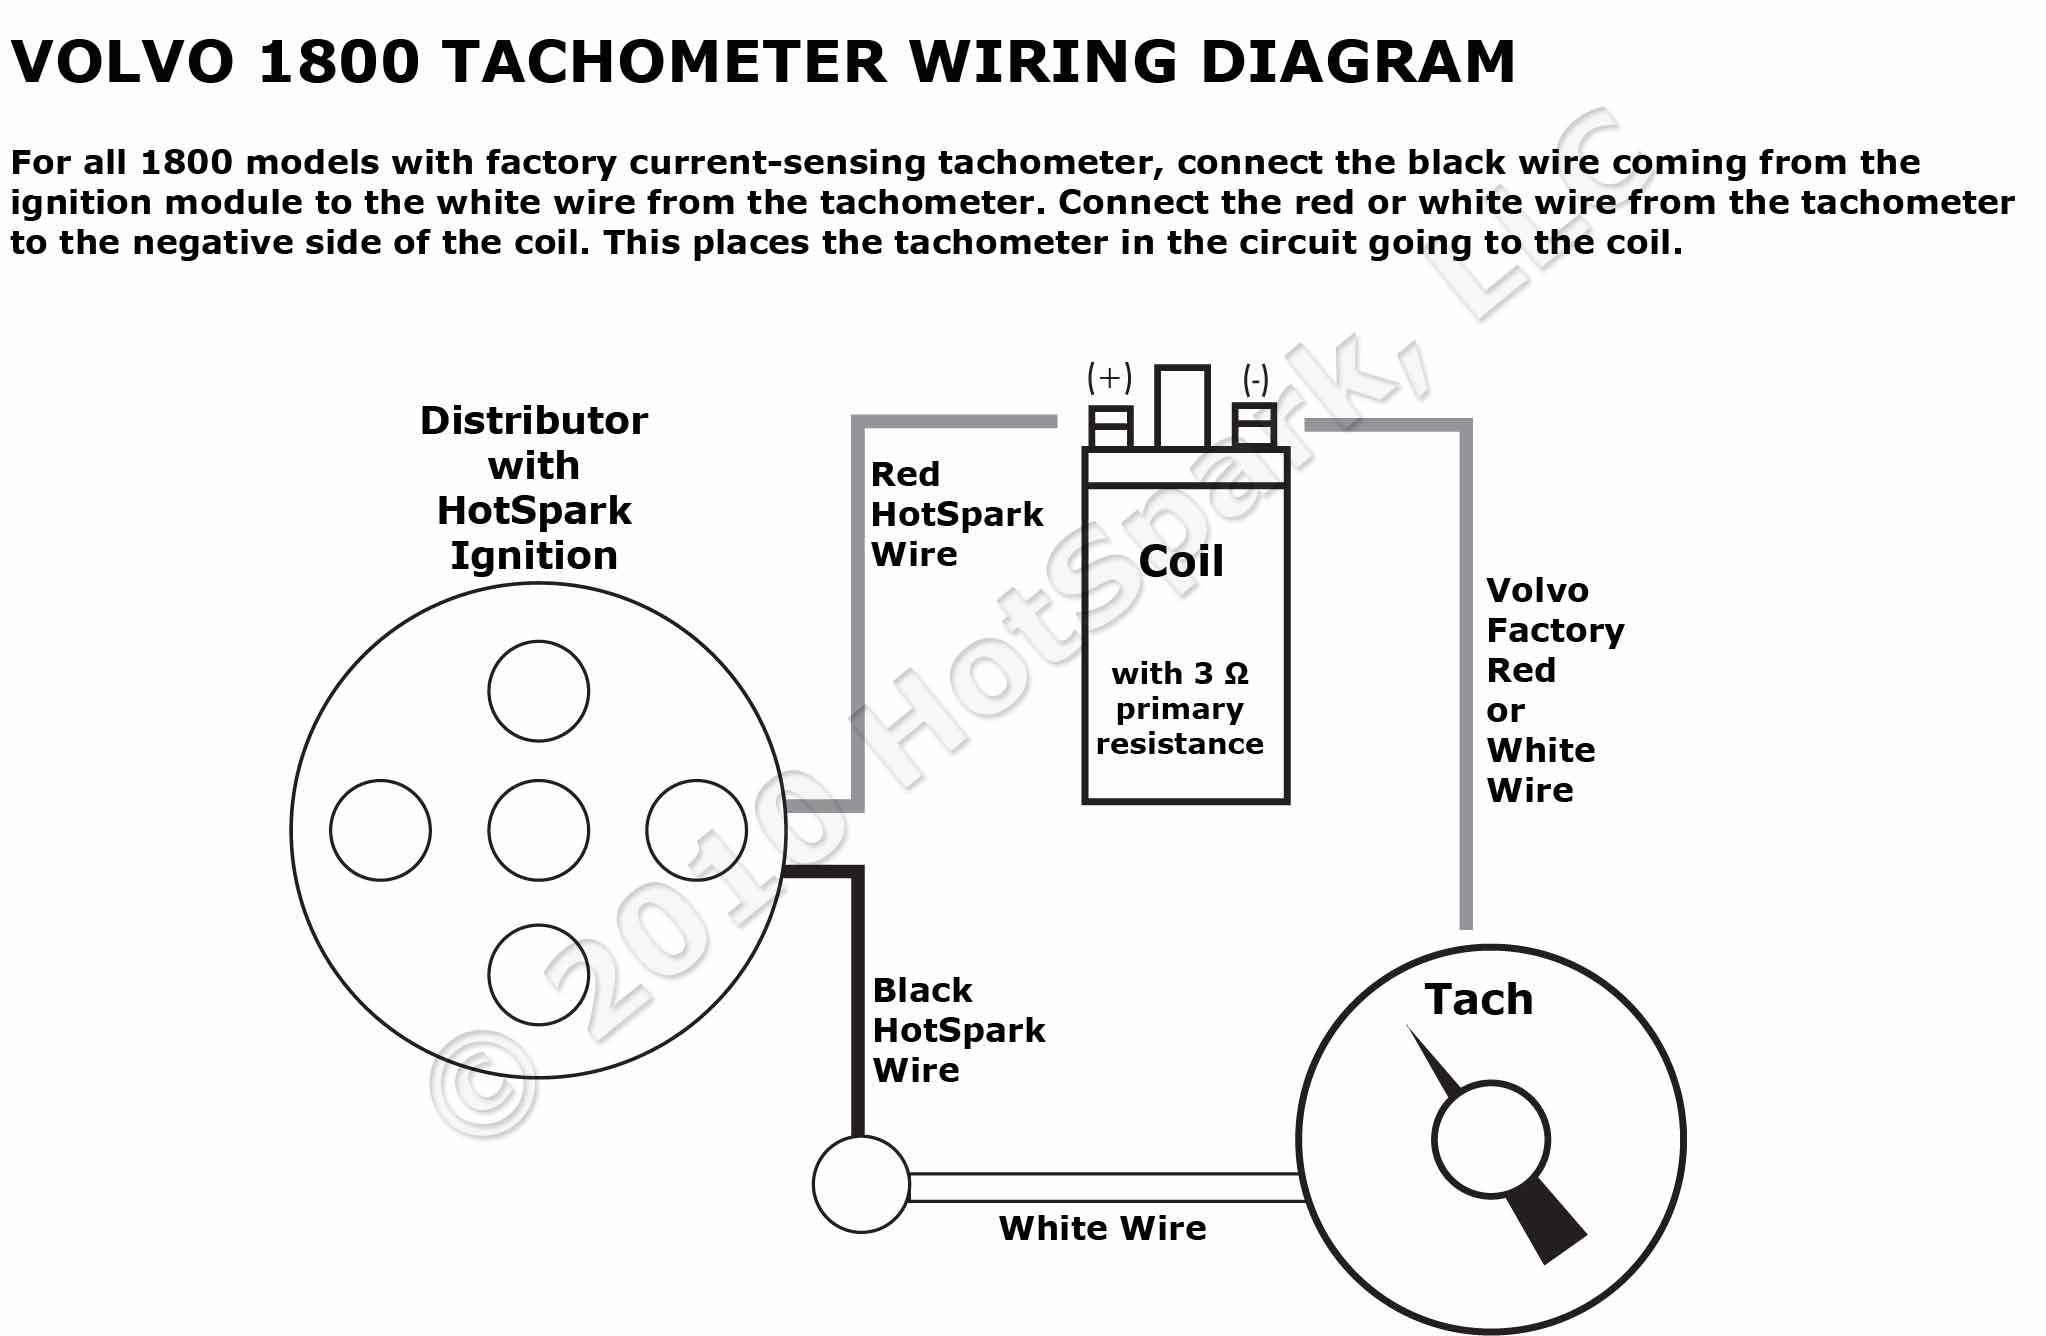 Volvo 1800 Tachometer and Hot Spark Wiring Diagram tach wiring diagram autometer tach wiring diagram \u2022 wiring Parking Lot Layout at cos-gaming.co